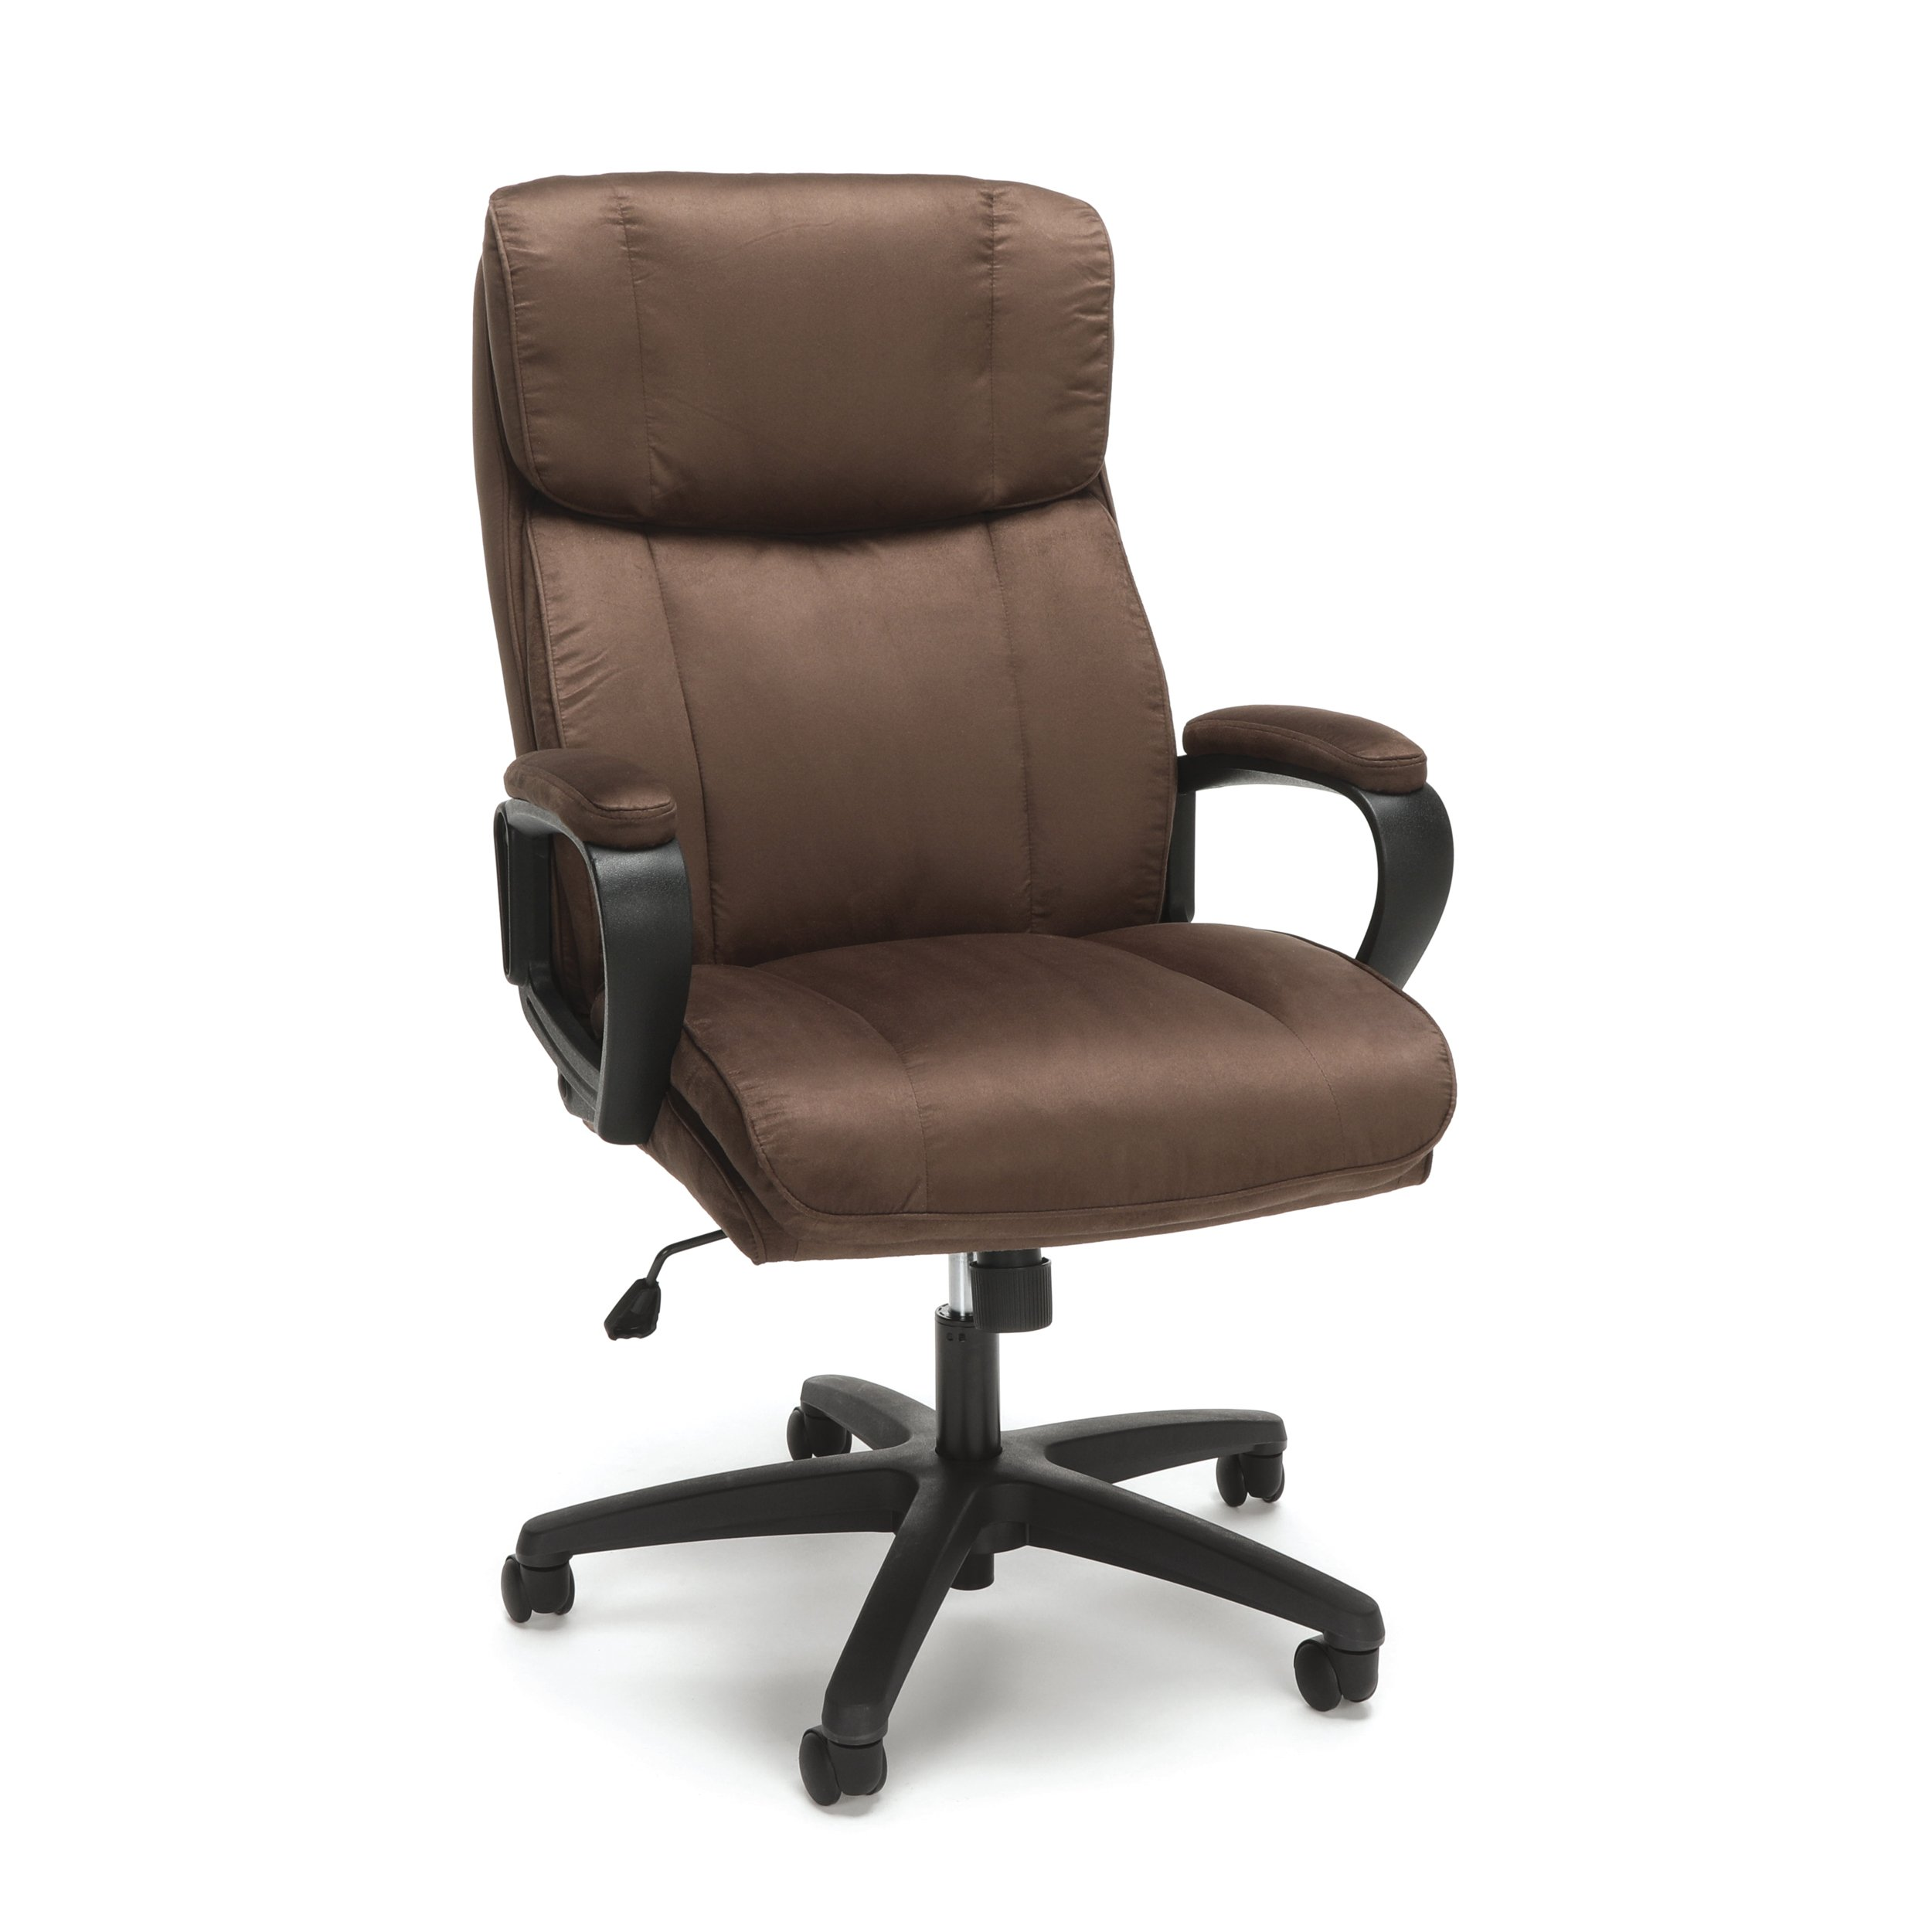 Essentials Executive Chair - Mid Back Office Computer Chair (ESS-3082-BRN) by OFM